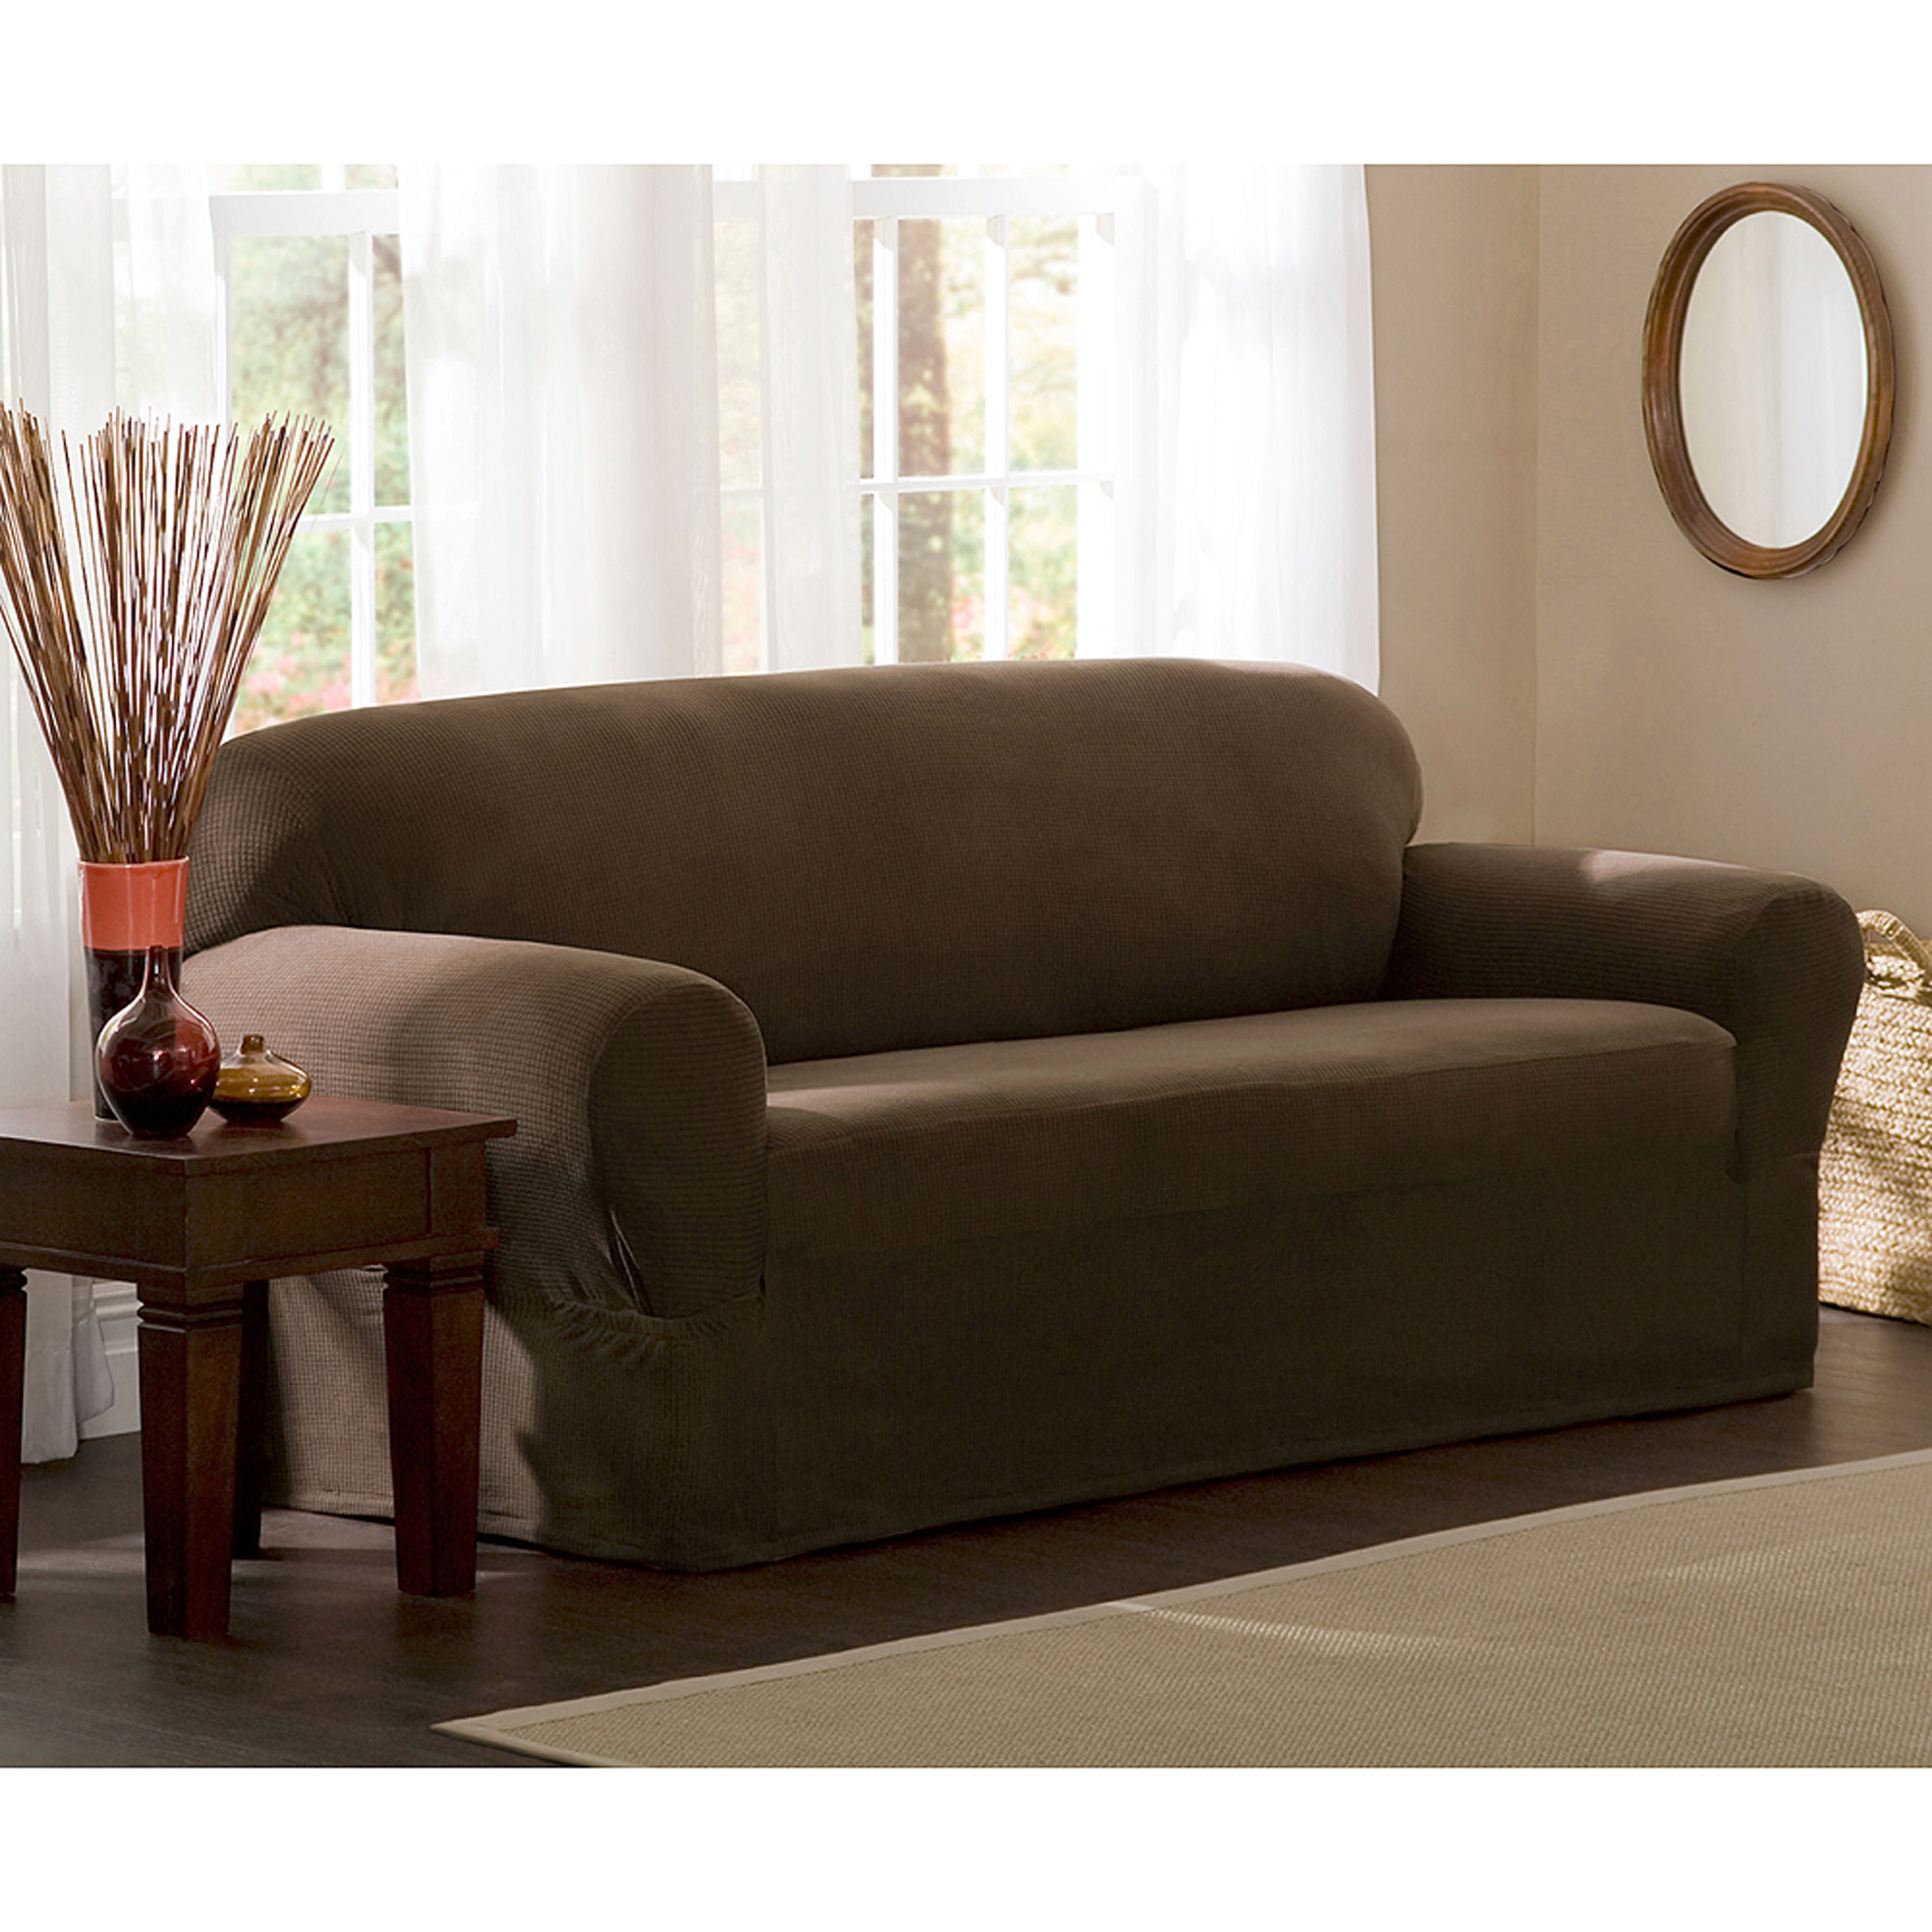 Maytex Stretch Reeves 1 Piece Sofa Furniture Cover Slipcover